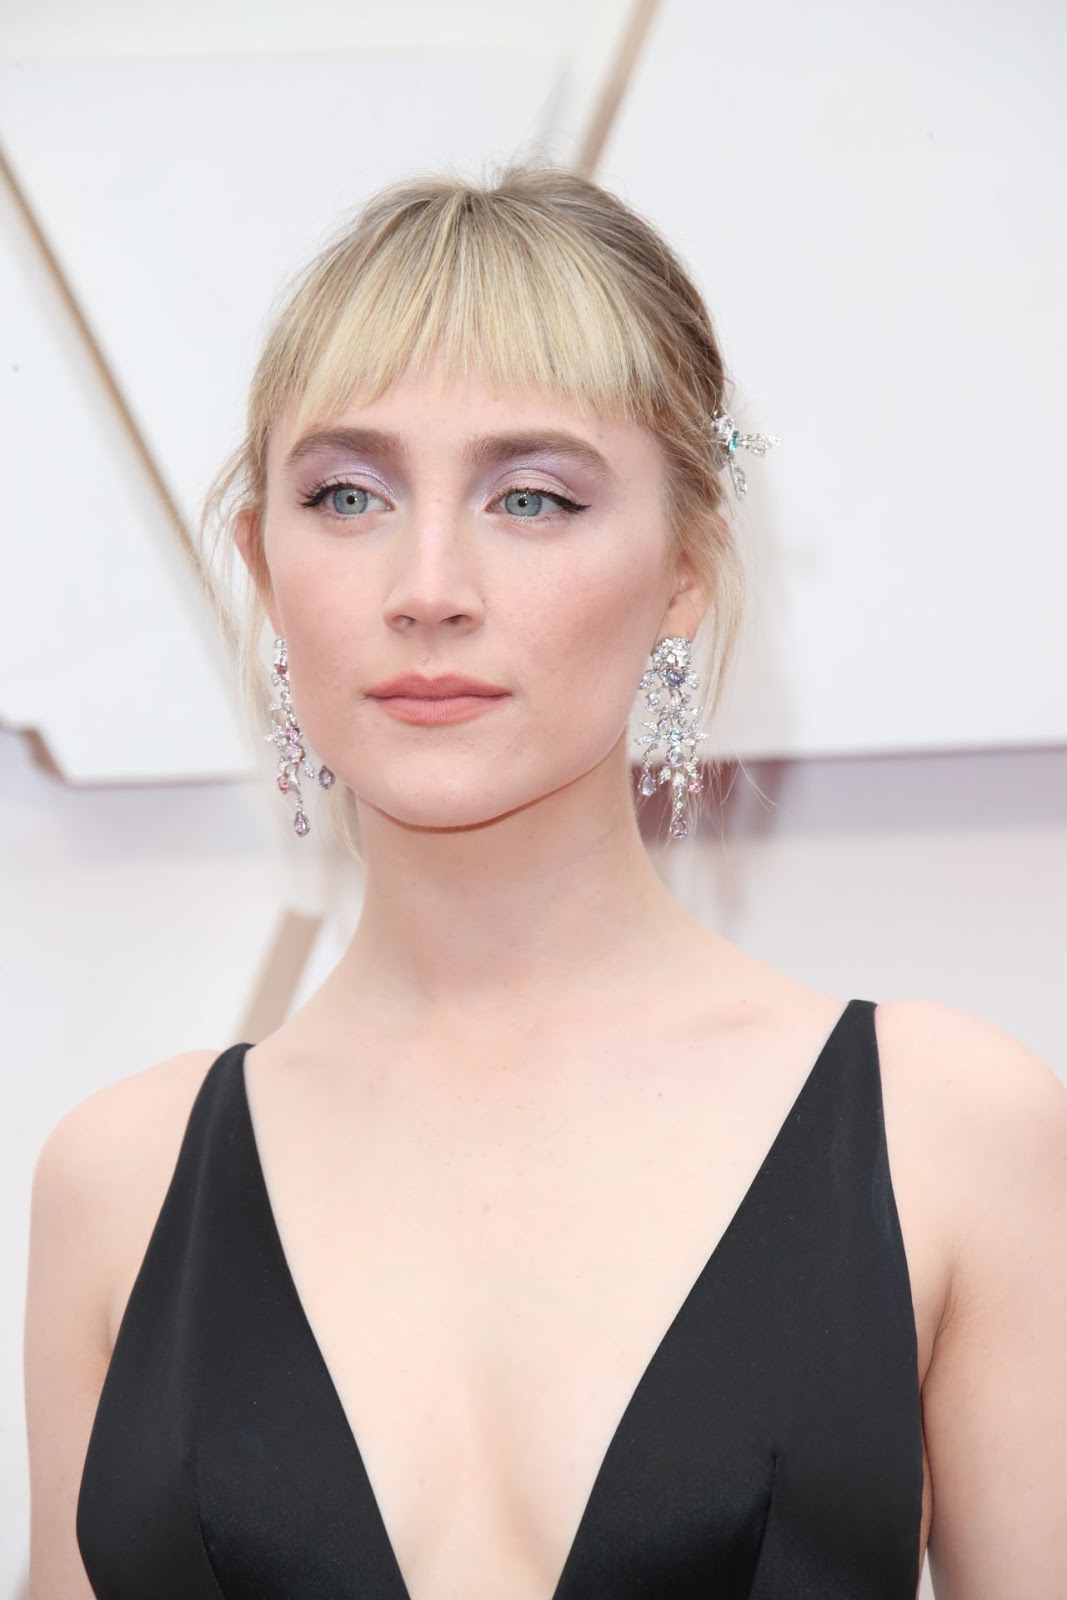 Saoirse Ronan - Oscars 2020 Red Carpet - 92nd Annual Academy Awards in Los Angeles